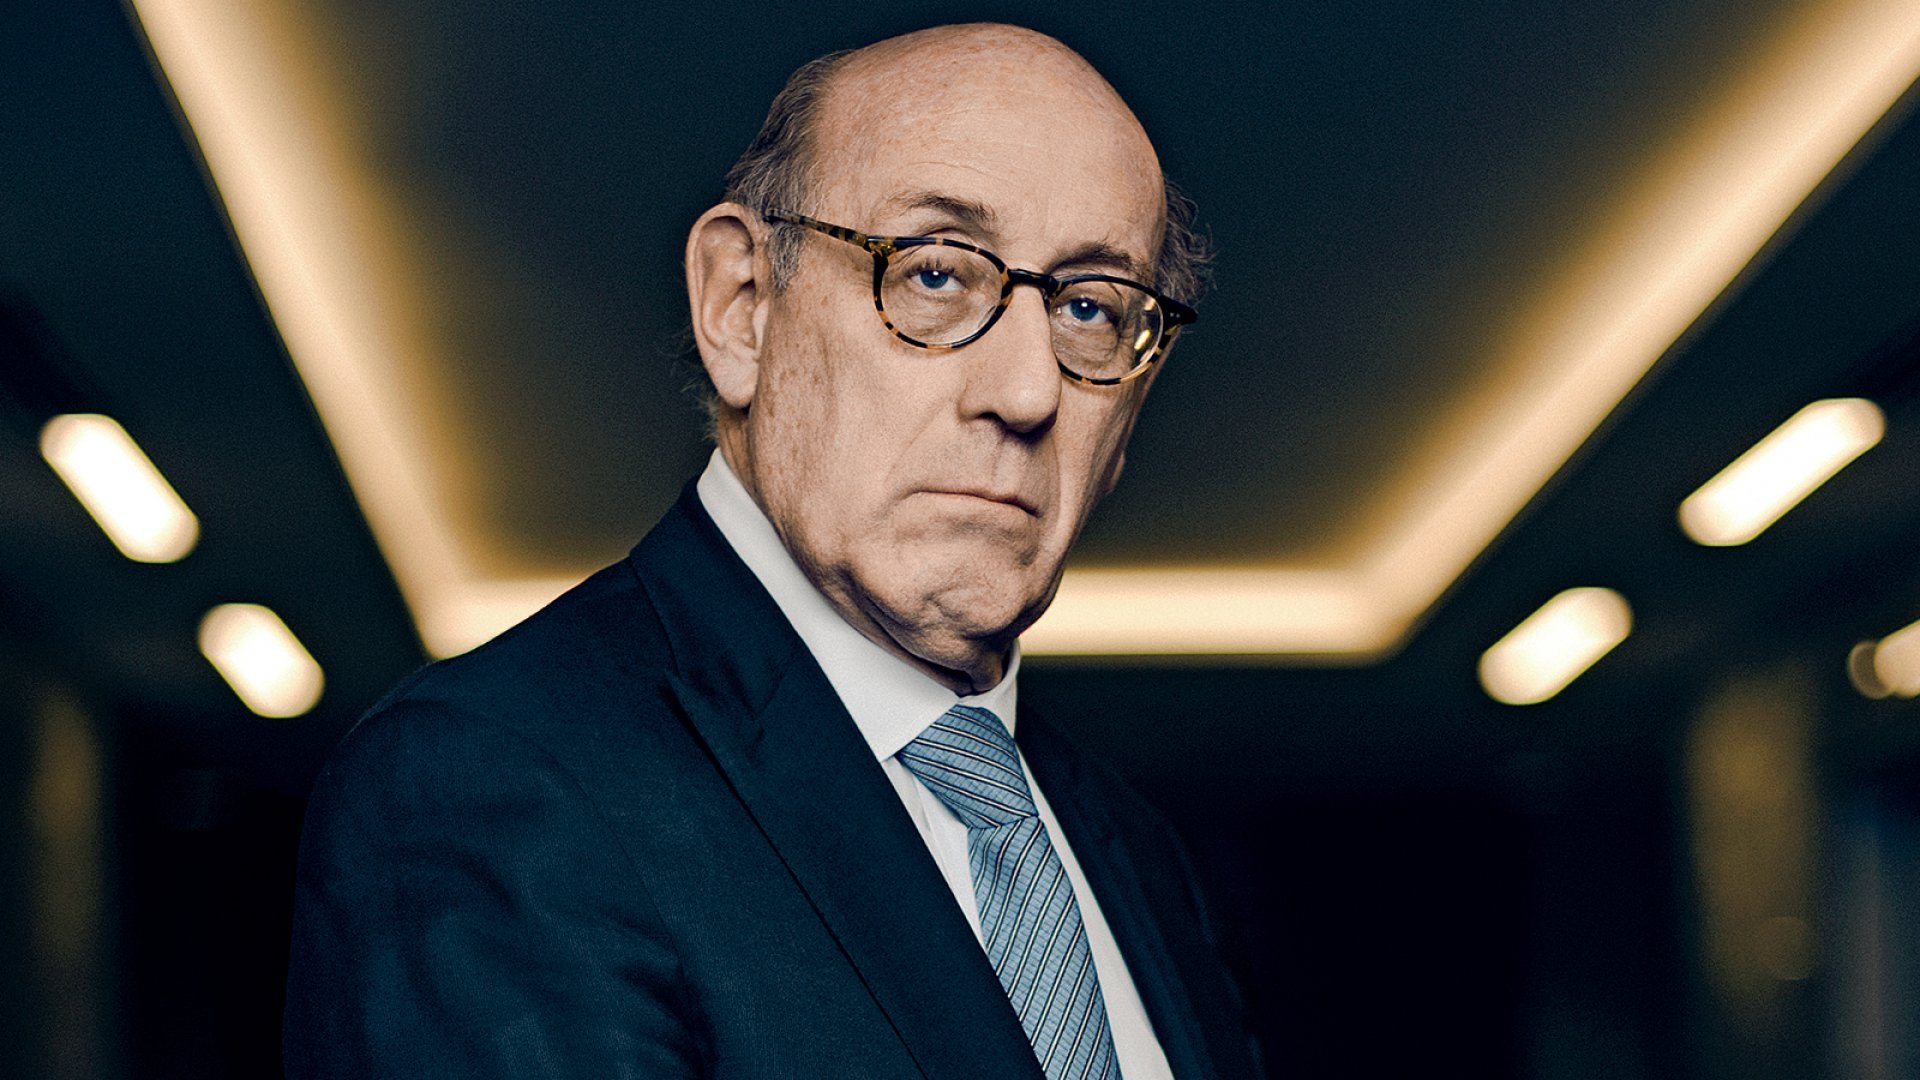 Kenneth Feinberg has spent his professional career helping bring resolution to victims of some of the most horrific accidents, attacks and scandals in American history.